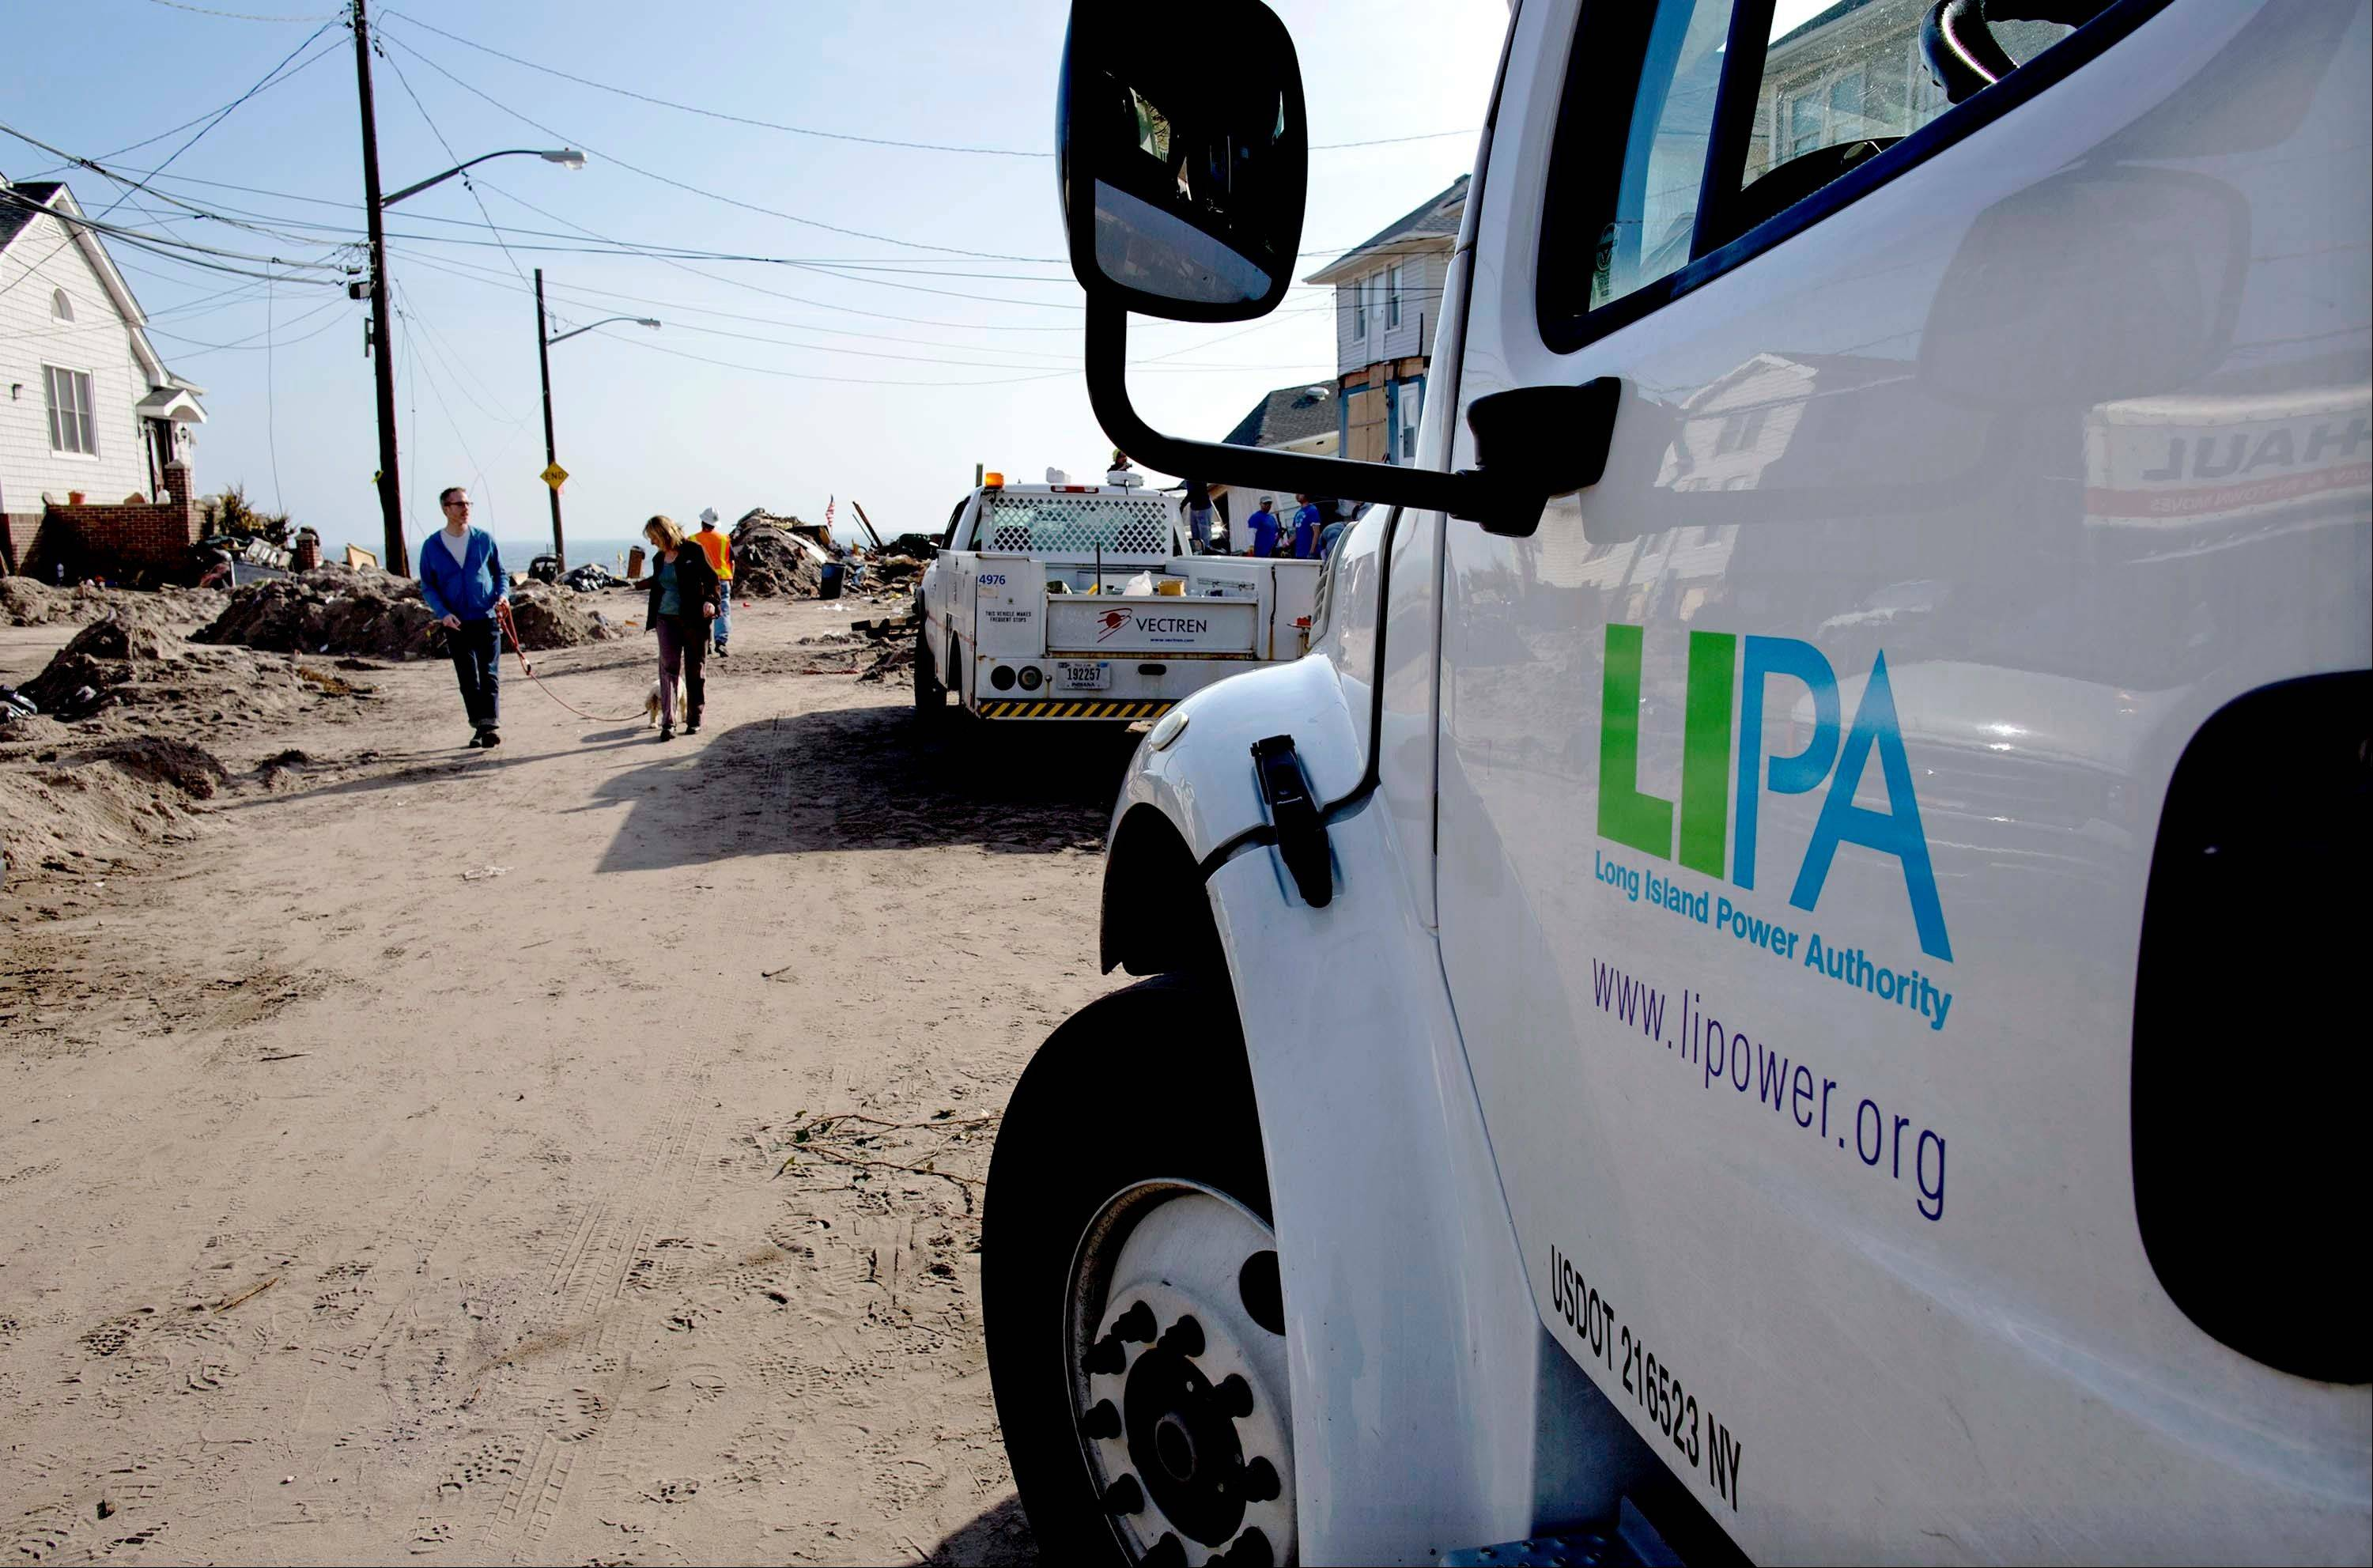 A Long Island Power Authority (LIPA) truck is seen in the Belle Harbor neighborhood of the borough of Queens, New York, Monday, Nov. 12, 2012, in the wake of Superstorm Sandy.